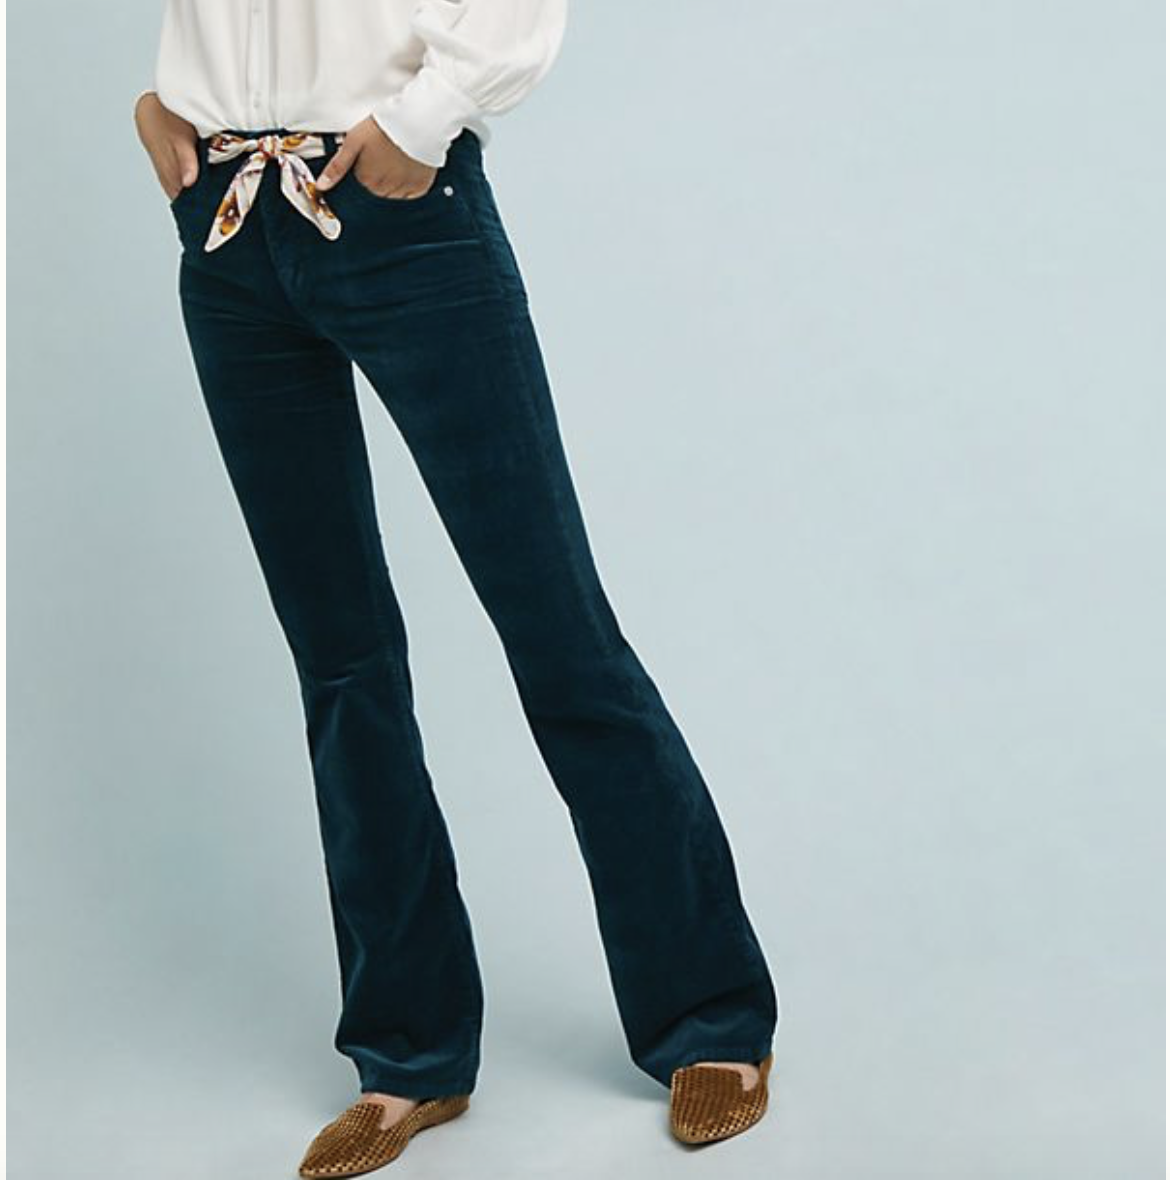 Laura Leigh of Louella Reese shares her favorite summer purchases of winter 2018 including bootcut corduroy pants